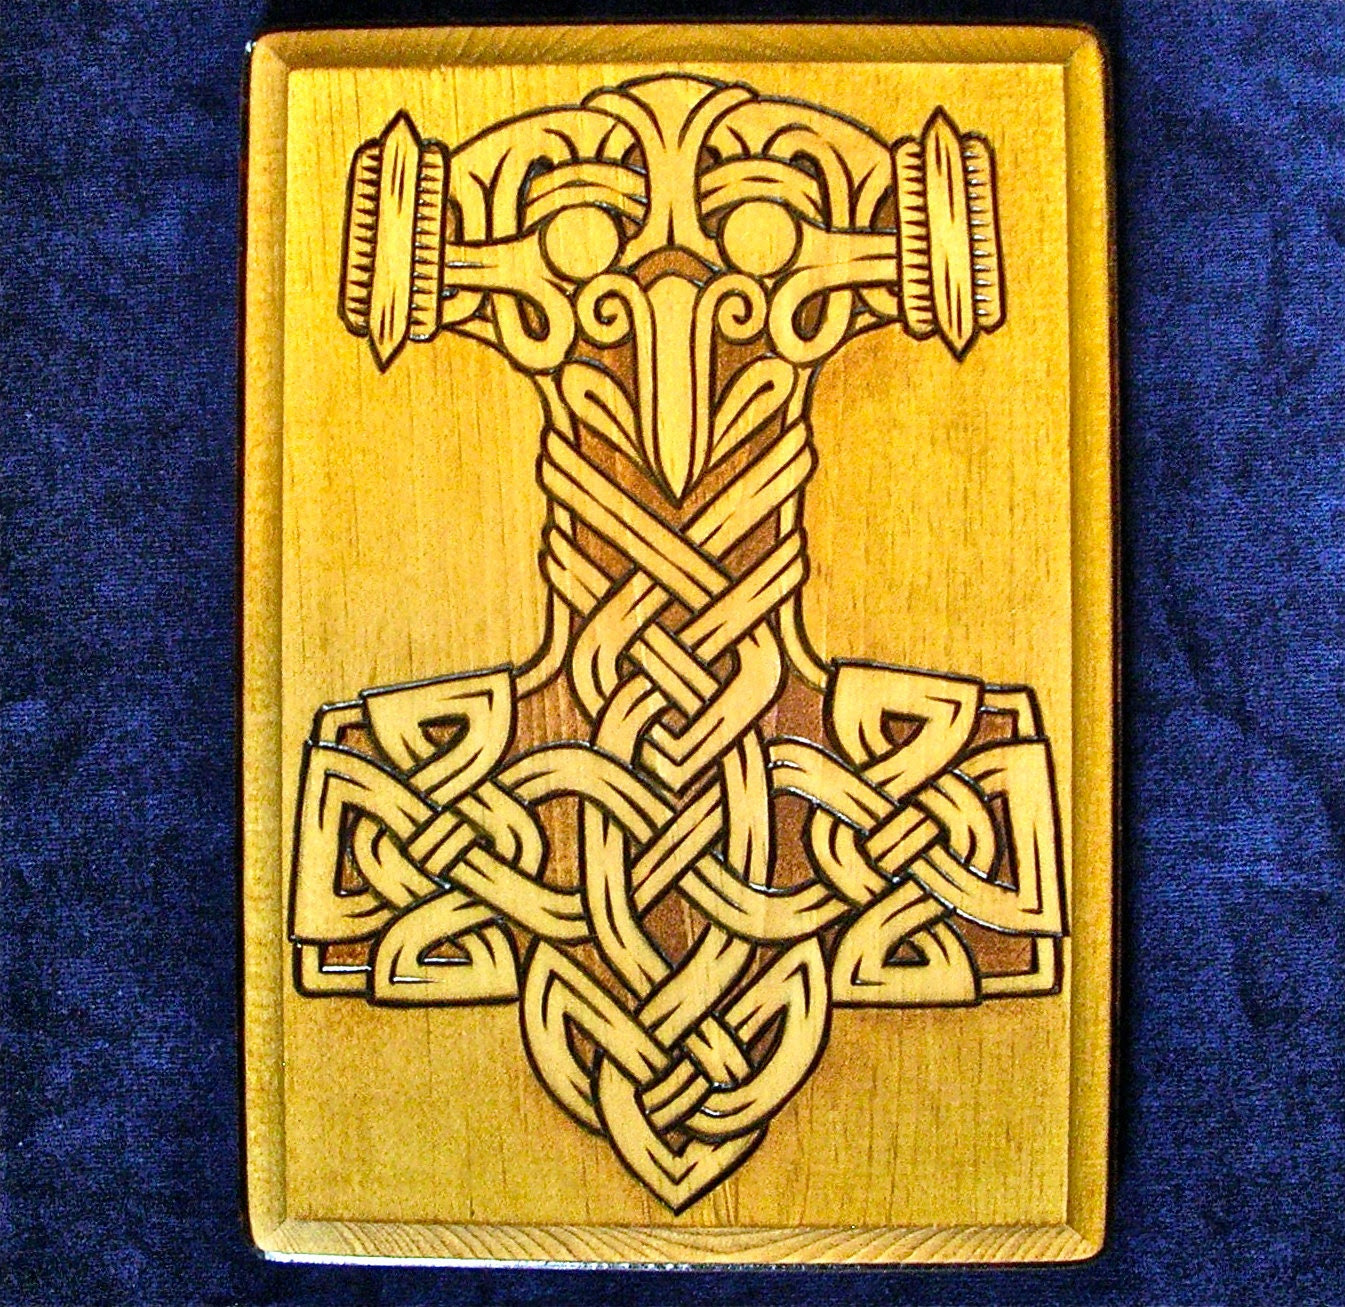 Eagle-headed Mjollnir w/ knotwork wood plaque